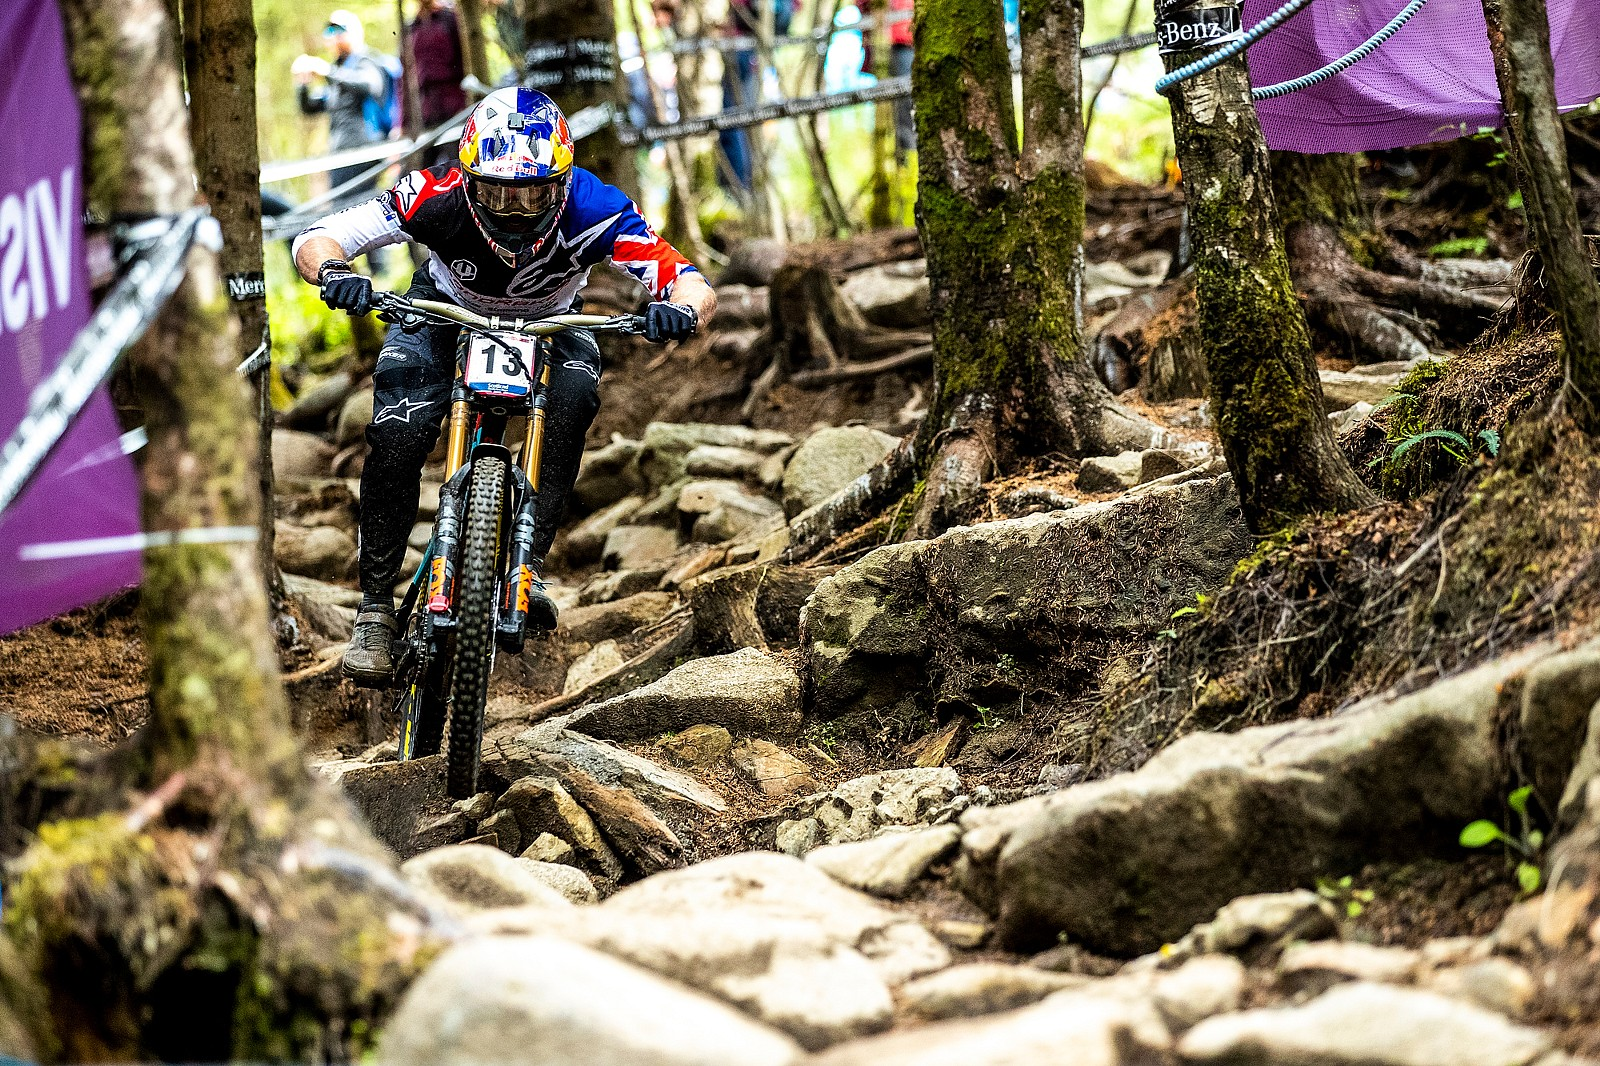 Fort William Frenzy, Brook Macdonald - A Big Bad Batch of Brook Macdonald Bangers - Mountain Biking Pictures - Vital MTB